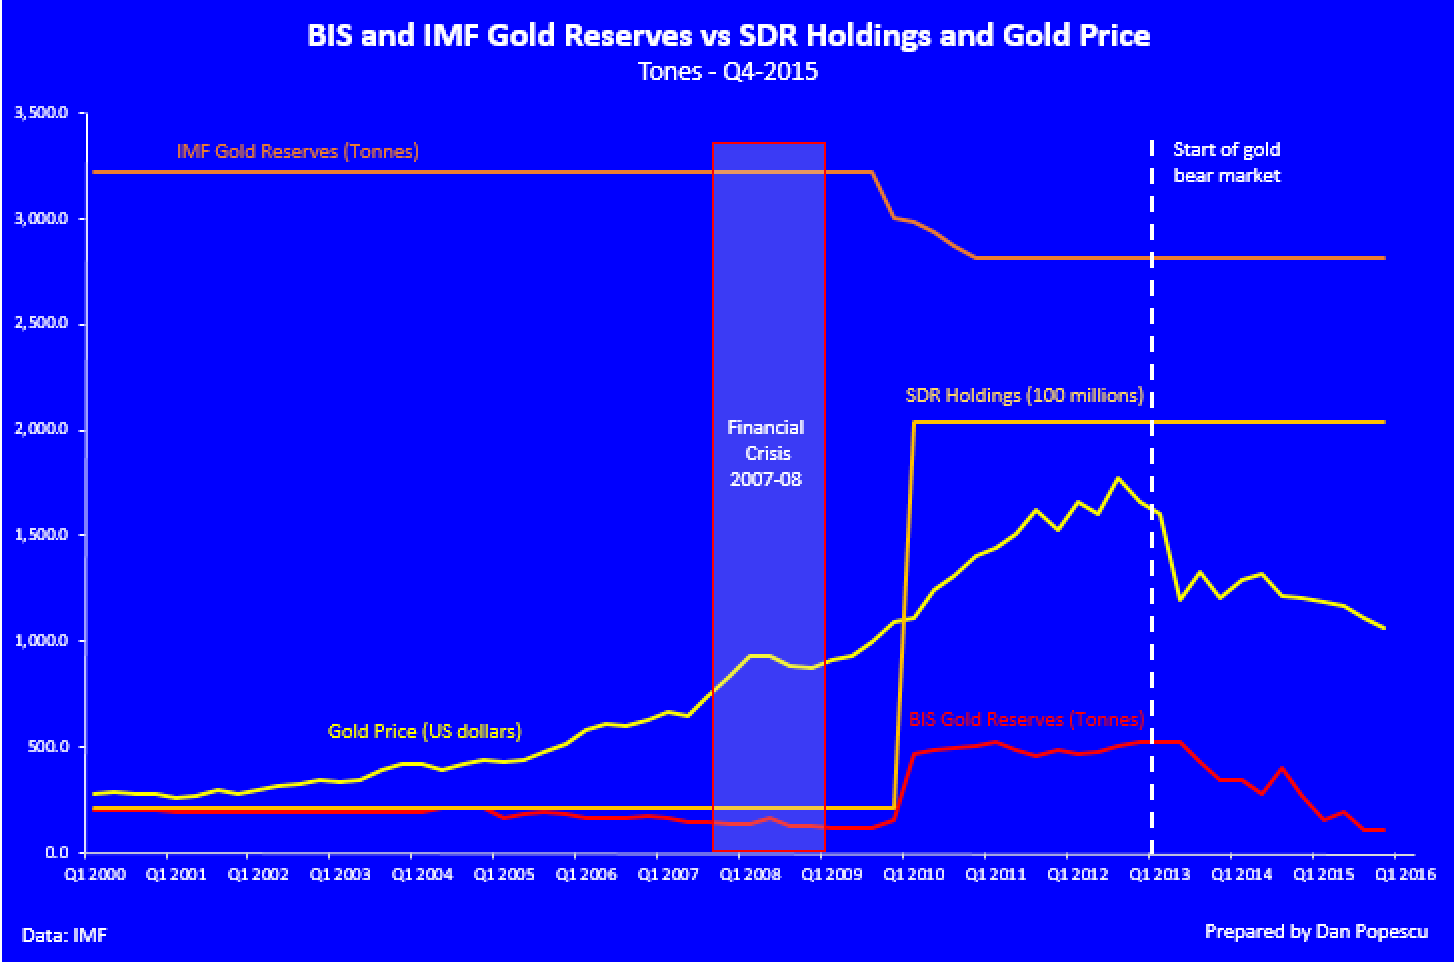 BIS and IMF gold reserves vs SDR holding and gold price